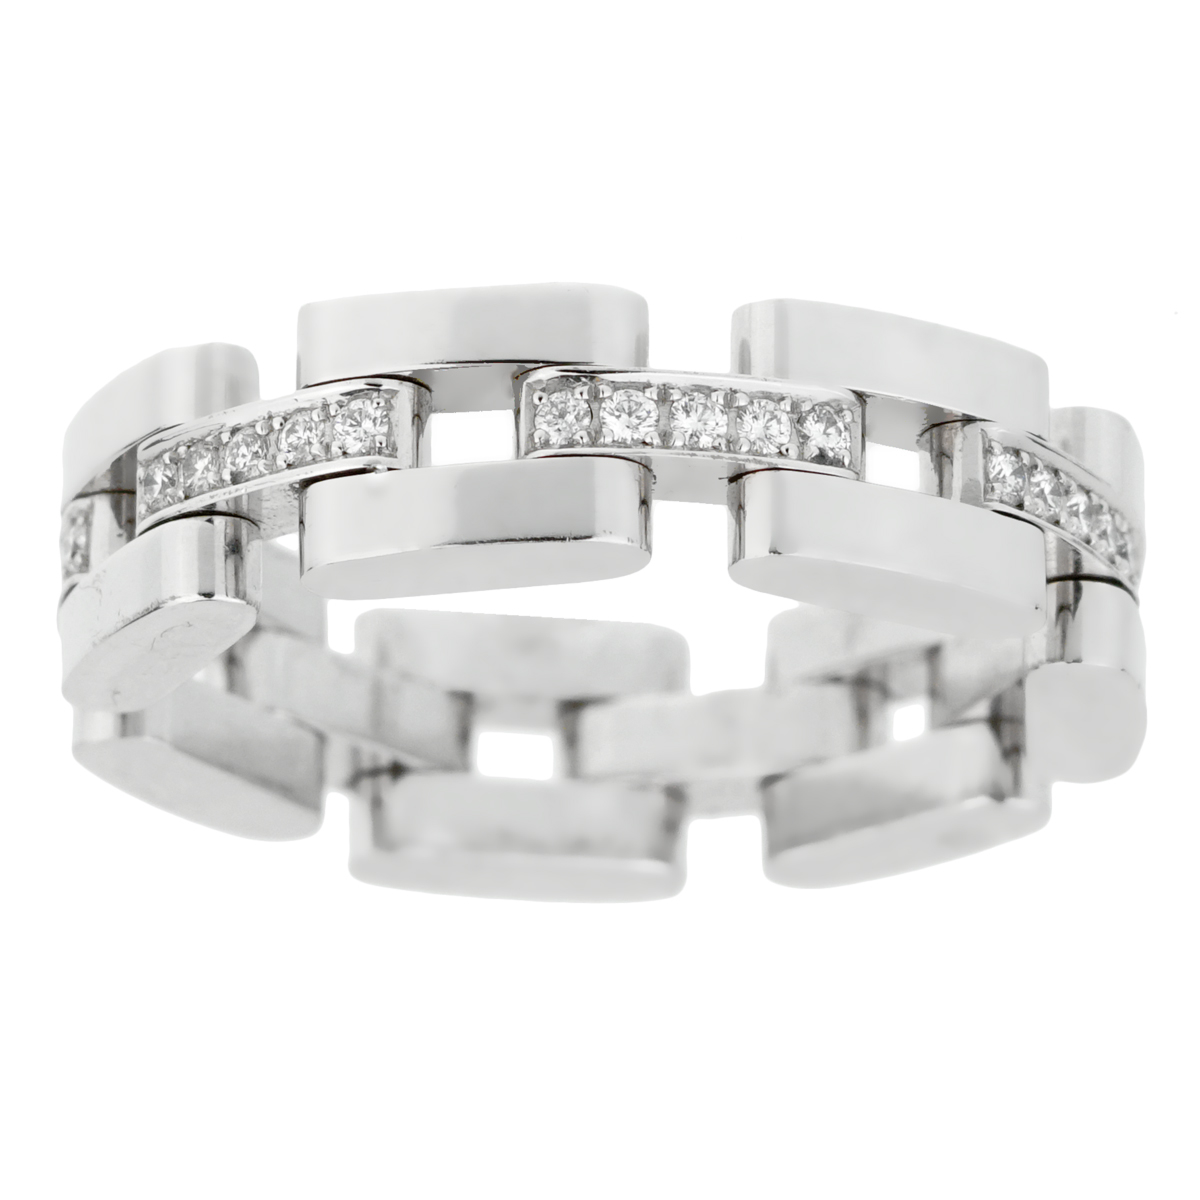 Chopard Les Chaines 3 Row White Gold Diamond Ring - Chopard Jewelry